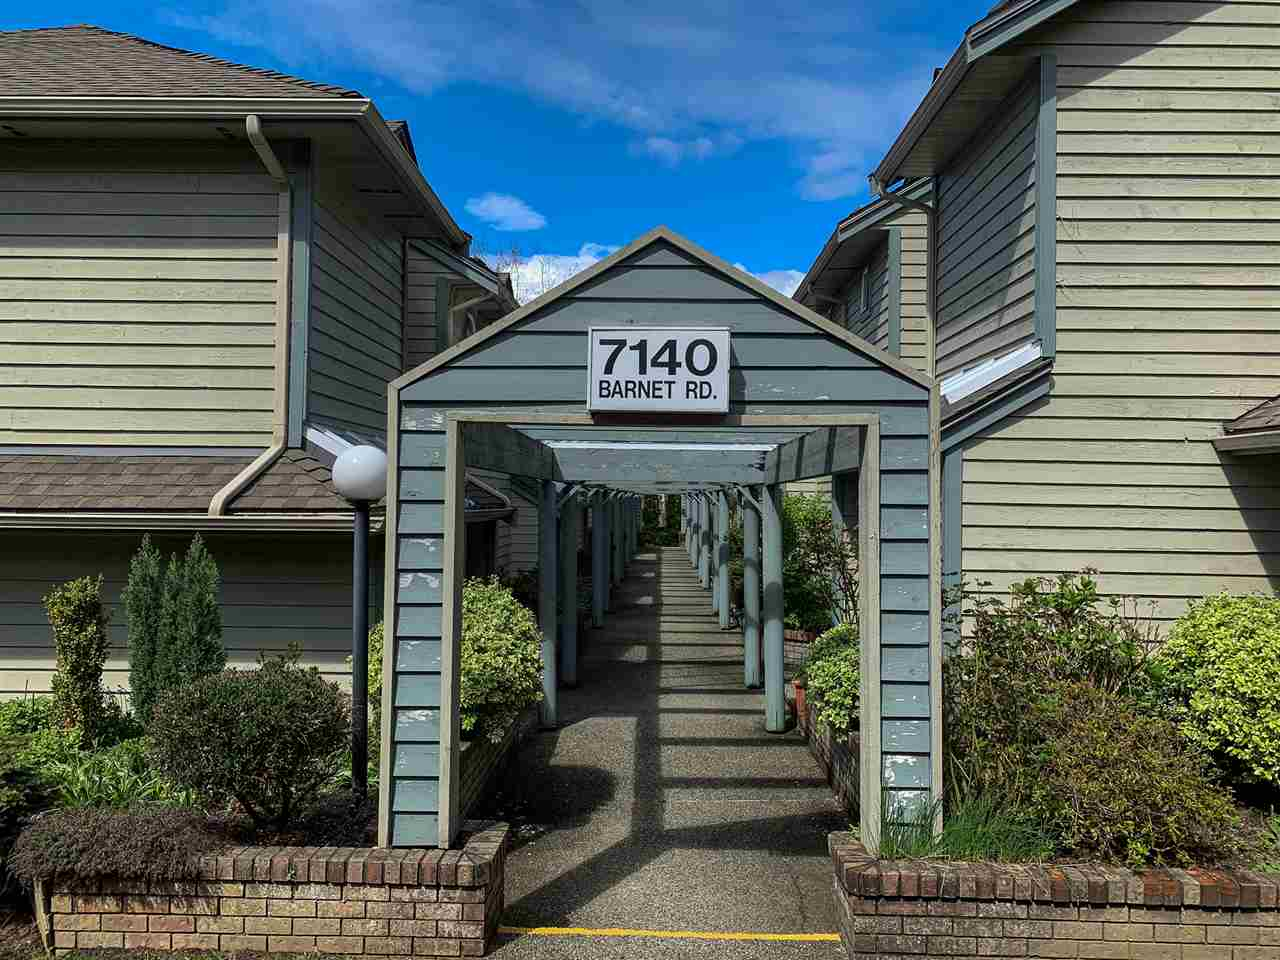 Well maintained 2 bedroom 2 bath townhome in Harbour Ridge Terrace. This END UNIT setting with trees and fenced yard. Functionaly layout with bright kitchen, skylight in dining area. Many updates through out years. Private yard extended the living space, perfect for BBQ and outdoor activities. Conveniently located at North Burnaby, close to SFU, shopping centre and so much more. Perfect for growing family or young couple. Well managed complex. Don't miss one! Open House April 28 Sunday 2-4